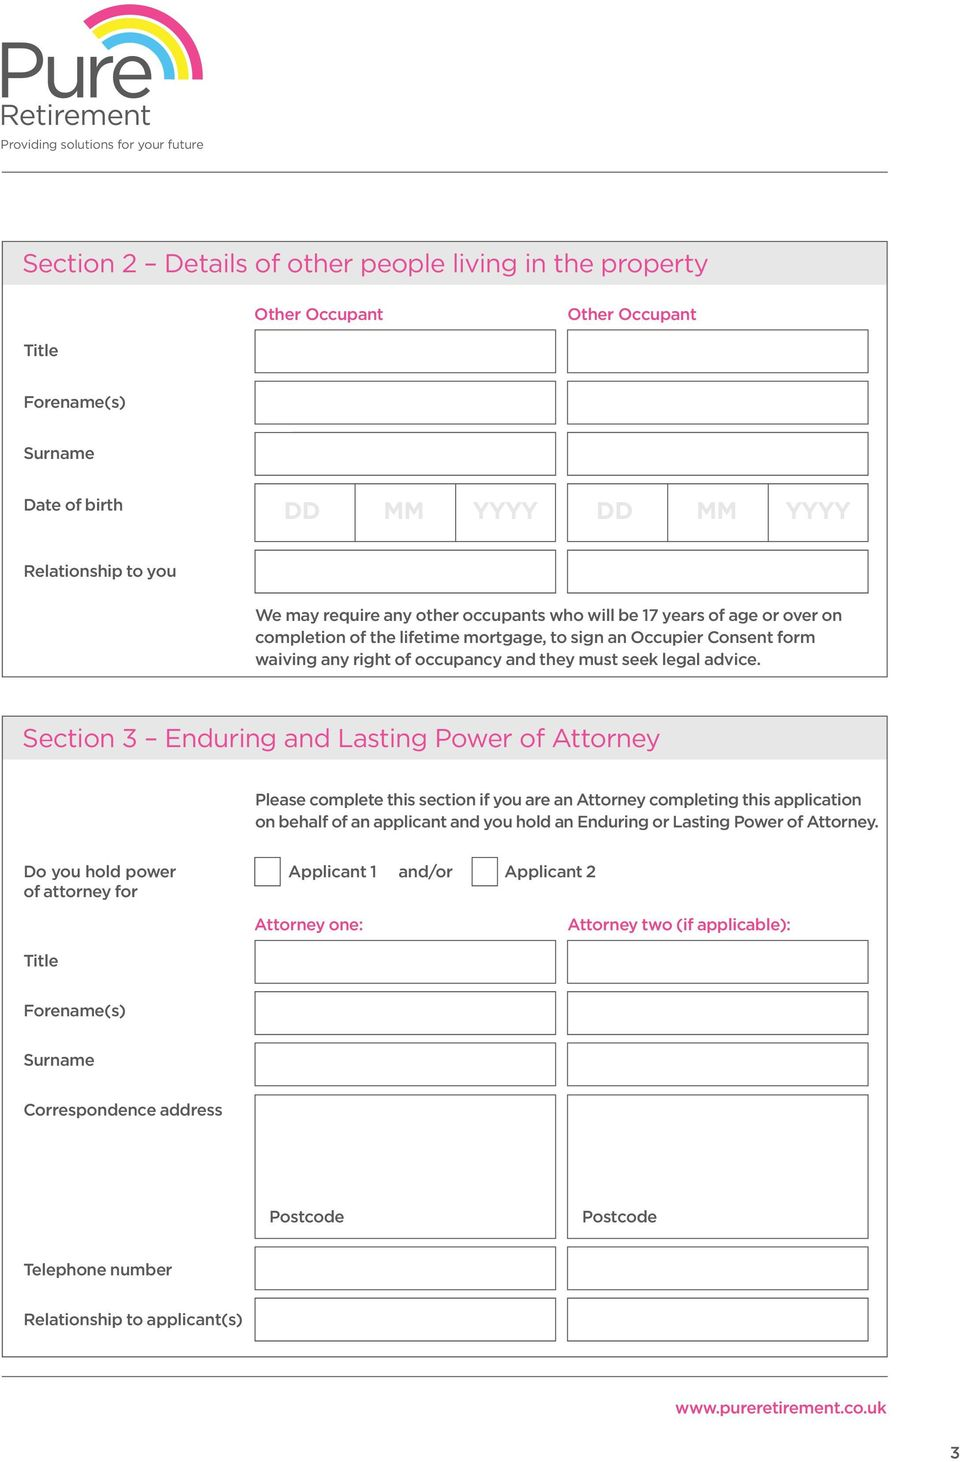 Section 3 Enduring and Lasting Power of Attorney Please complete this section if you are an Attorney completing this application on behalf of an applicant and you hold an Enduring or Lasting Power